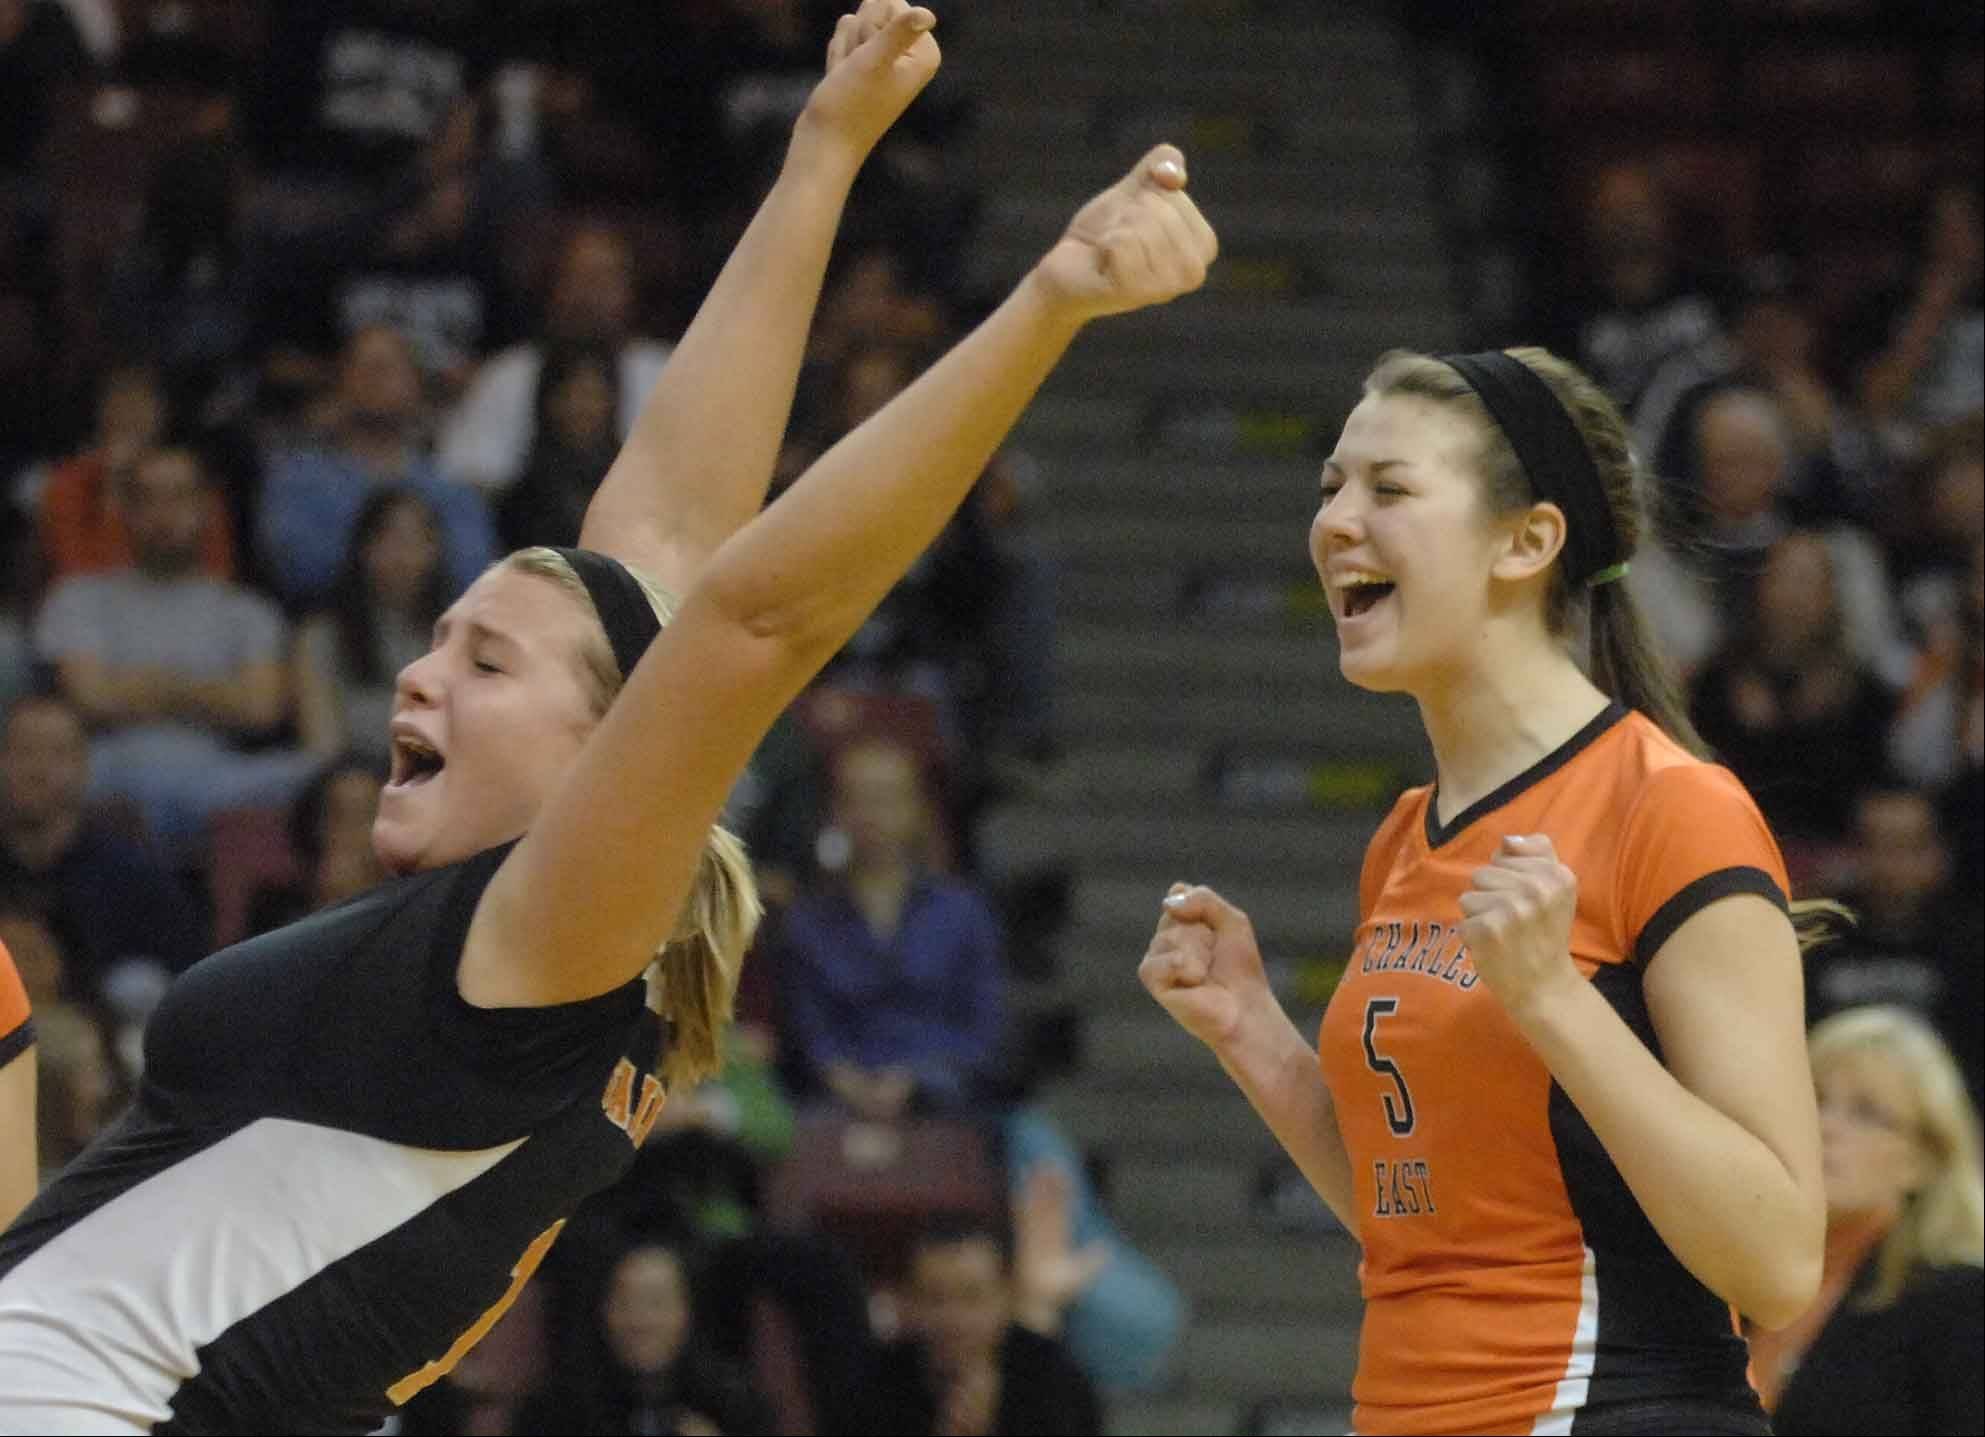 Maisey Mulvey, left, and Nicole Woods of St. Charles East let out a scream during the Benet vs. St. Charles East girls state volleyball 4A semifinal Friday in Normal.